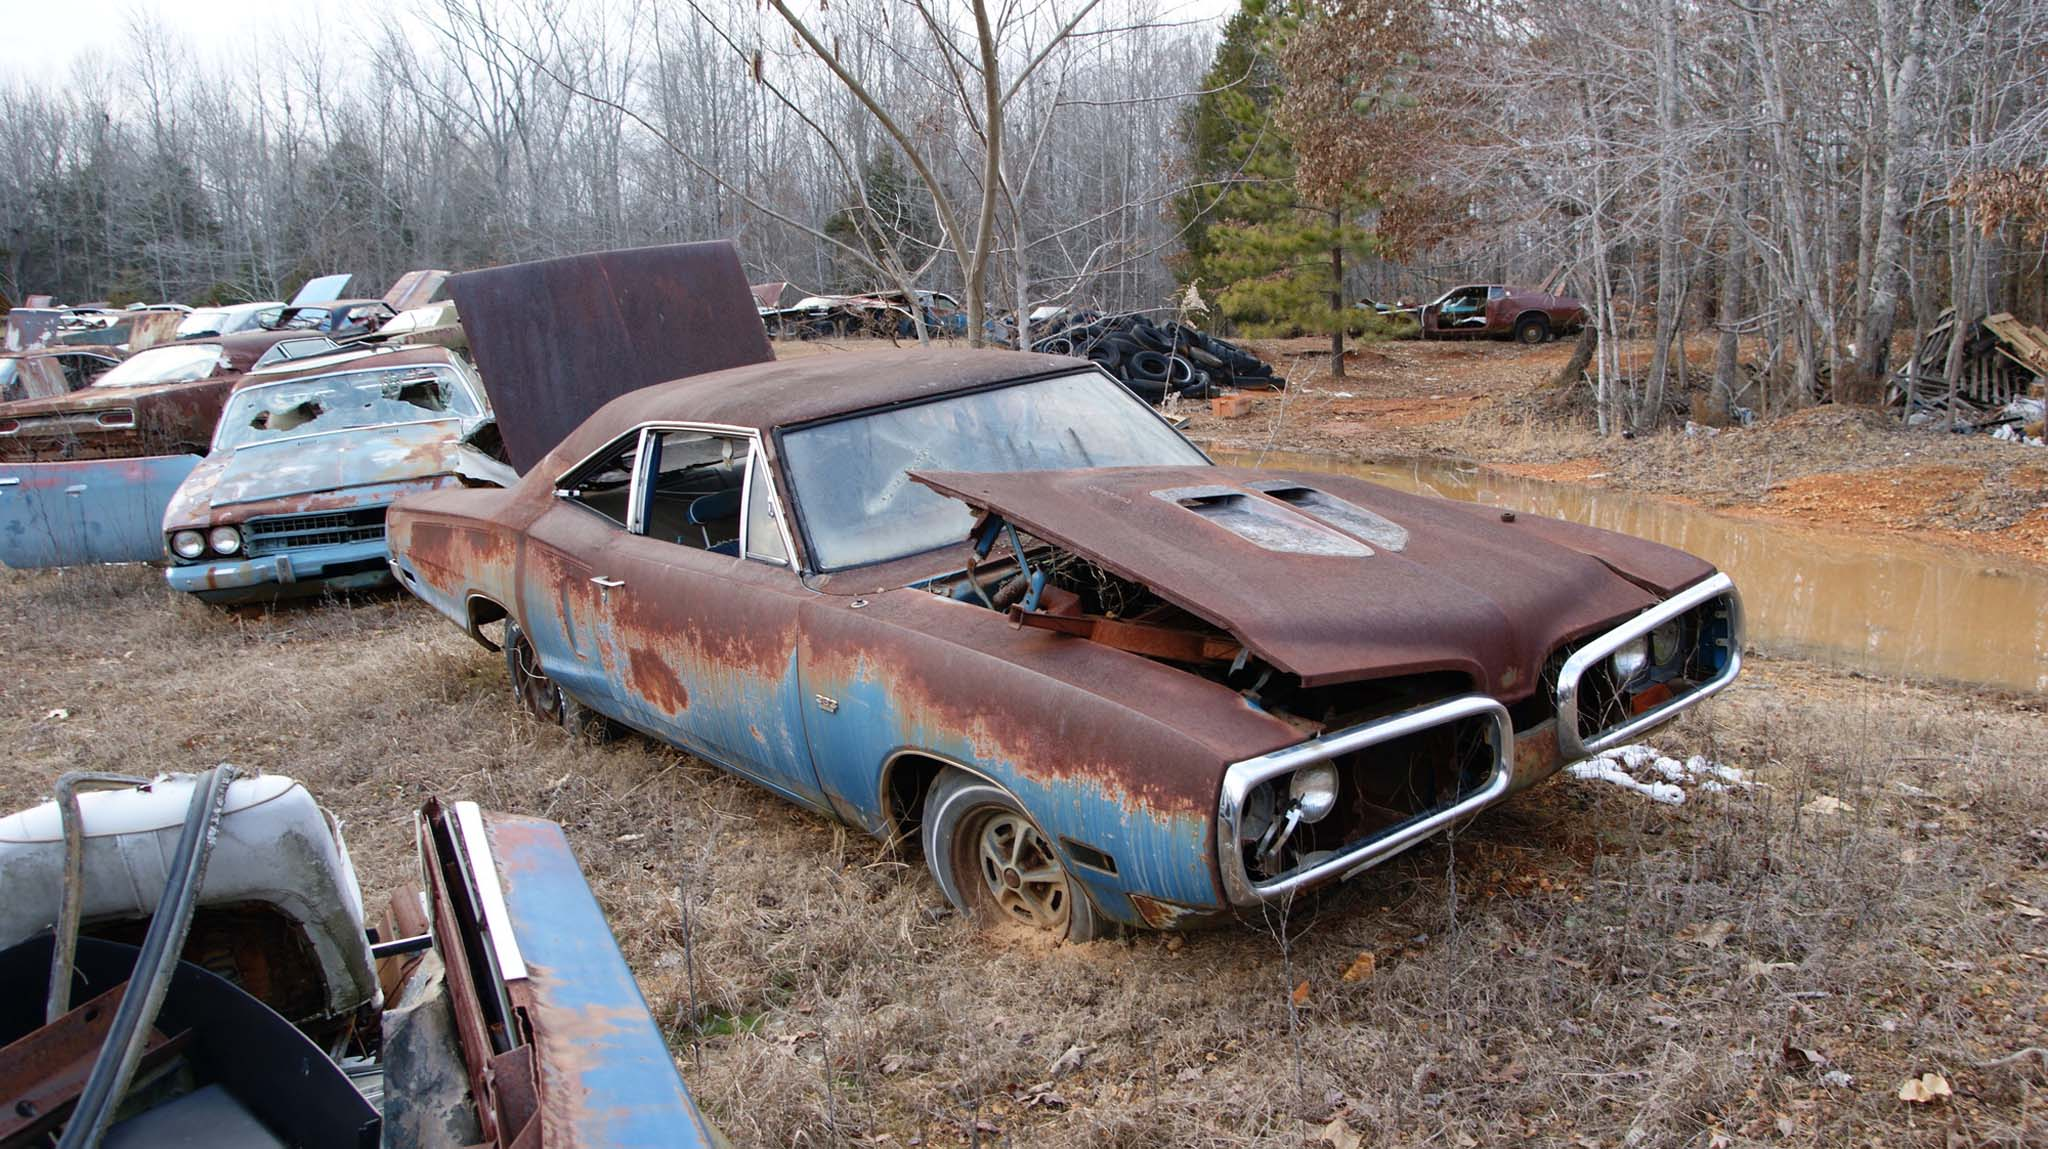 The roof is toast but otherwise this 1970 383 Super Bee is another somewhat useable car with amazing patina.